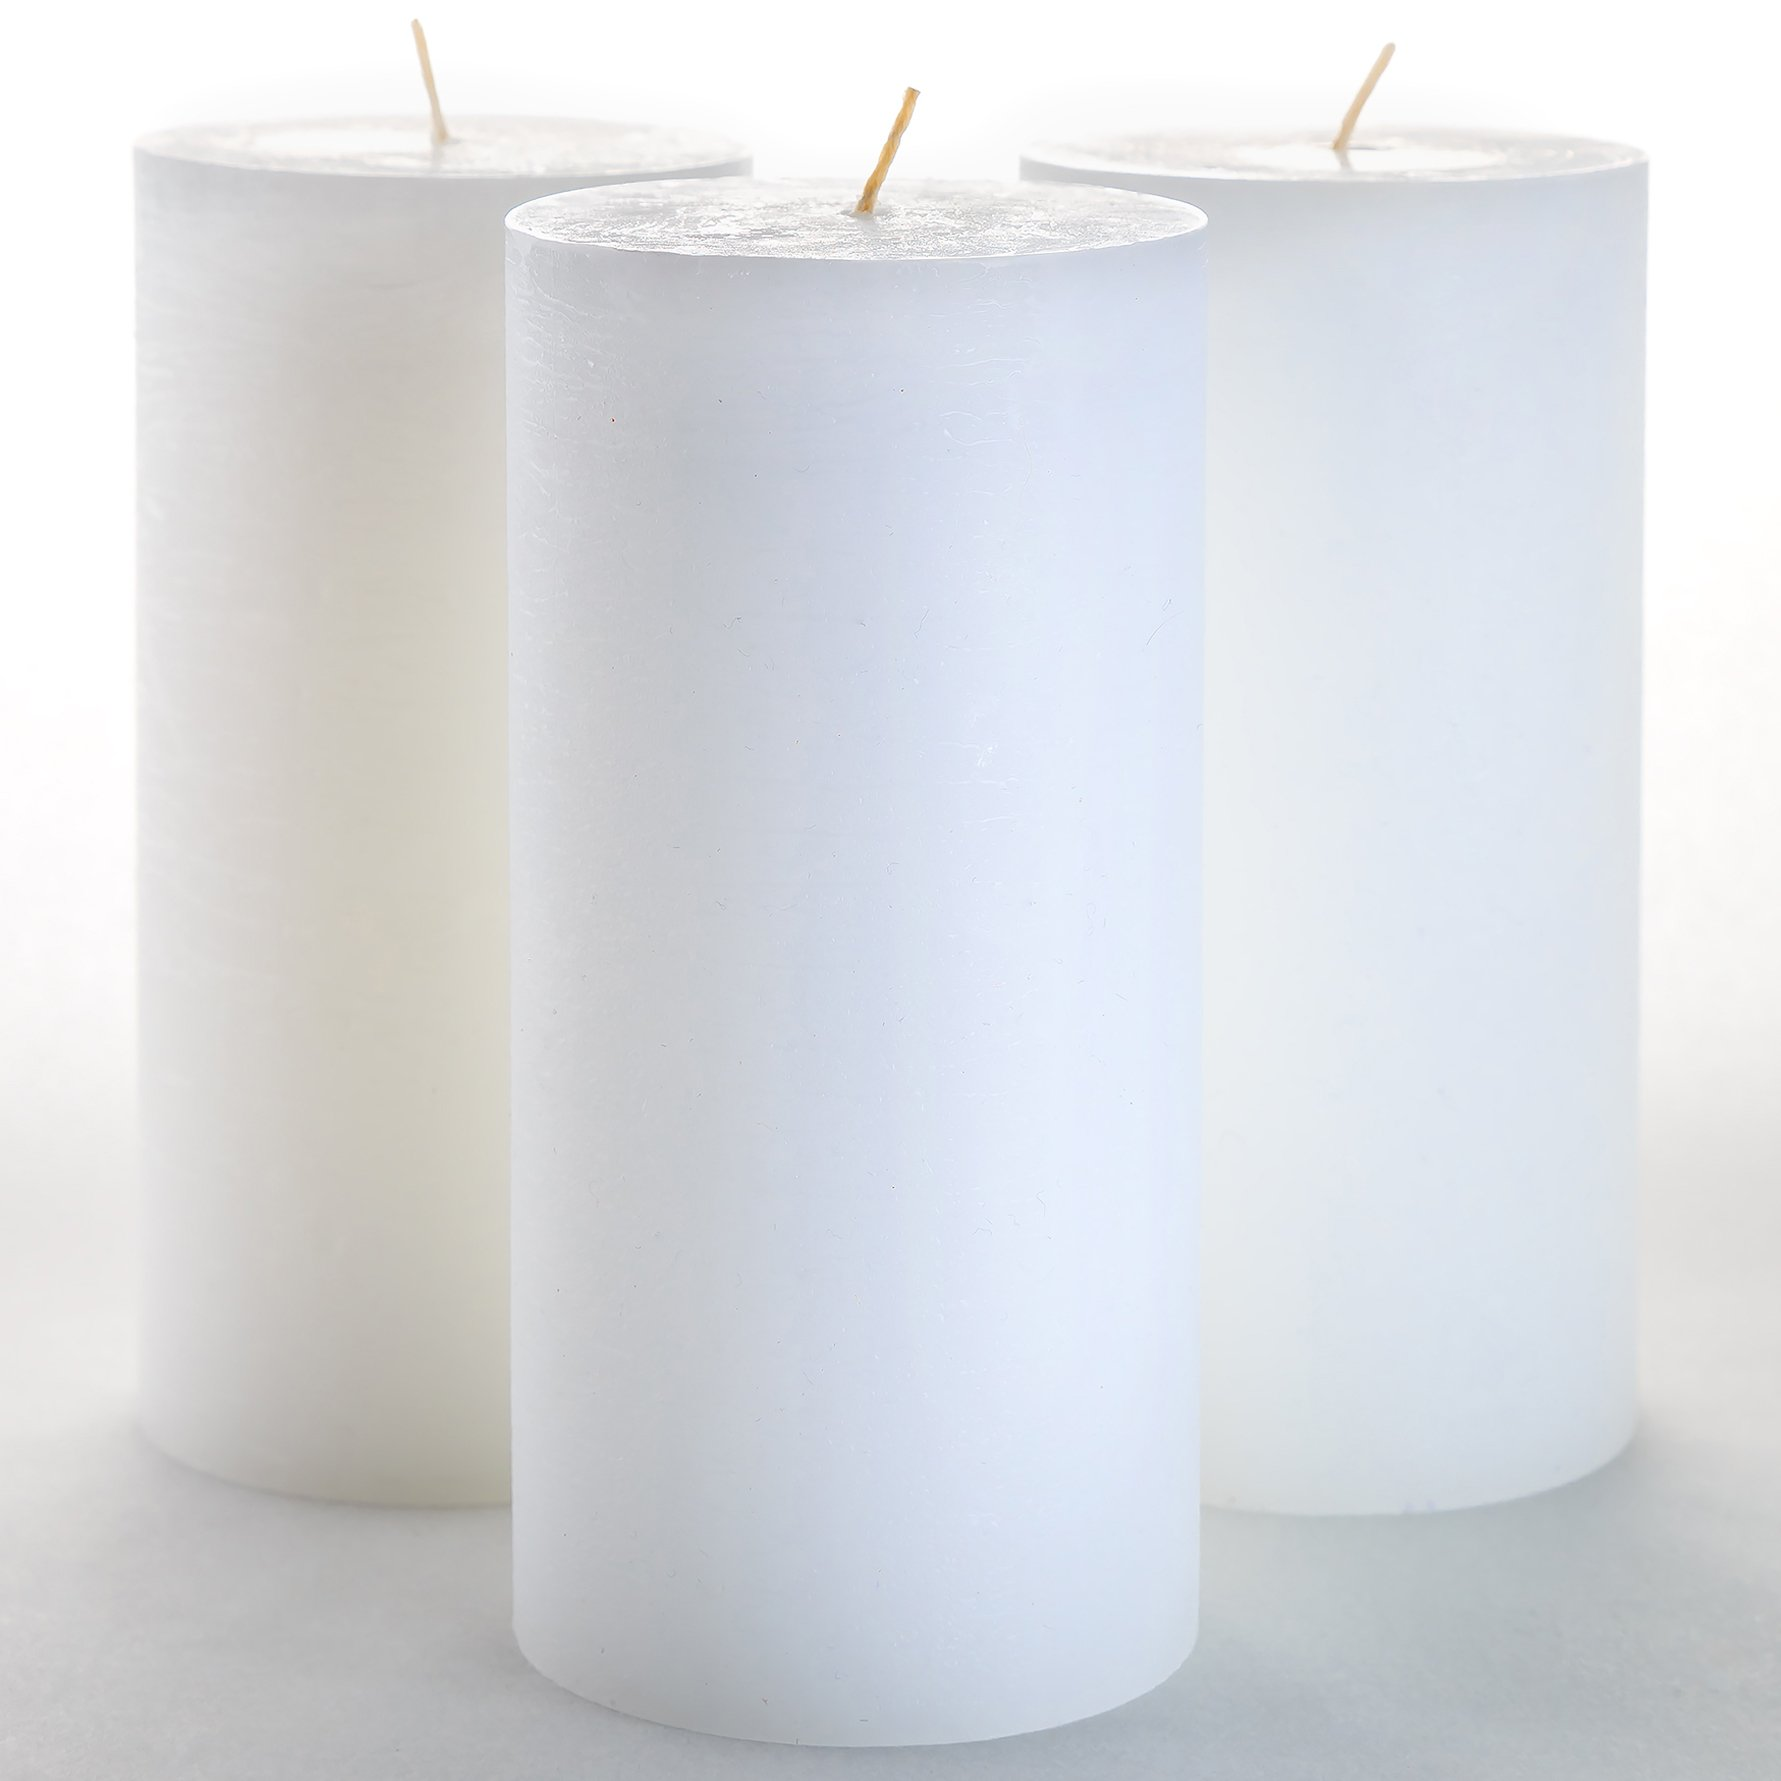 3'' x 6'' White Pillar Candles Set of 3 Unscented for Wedding Church Restaurants Spa Smokeless Cotton Wick by Melt Candle Company